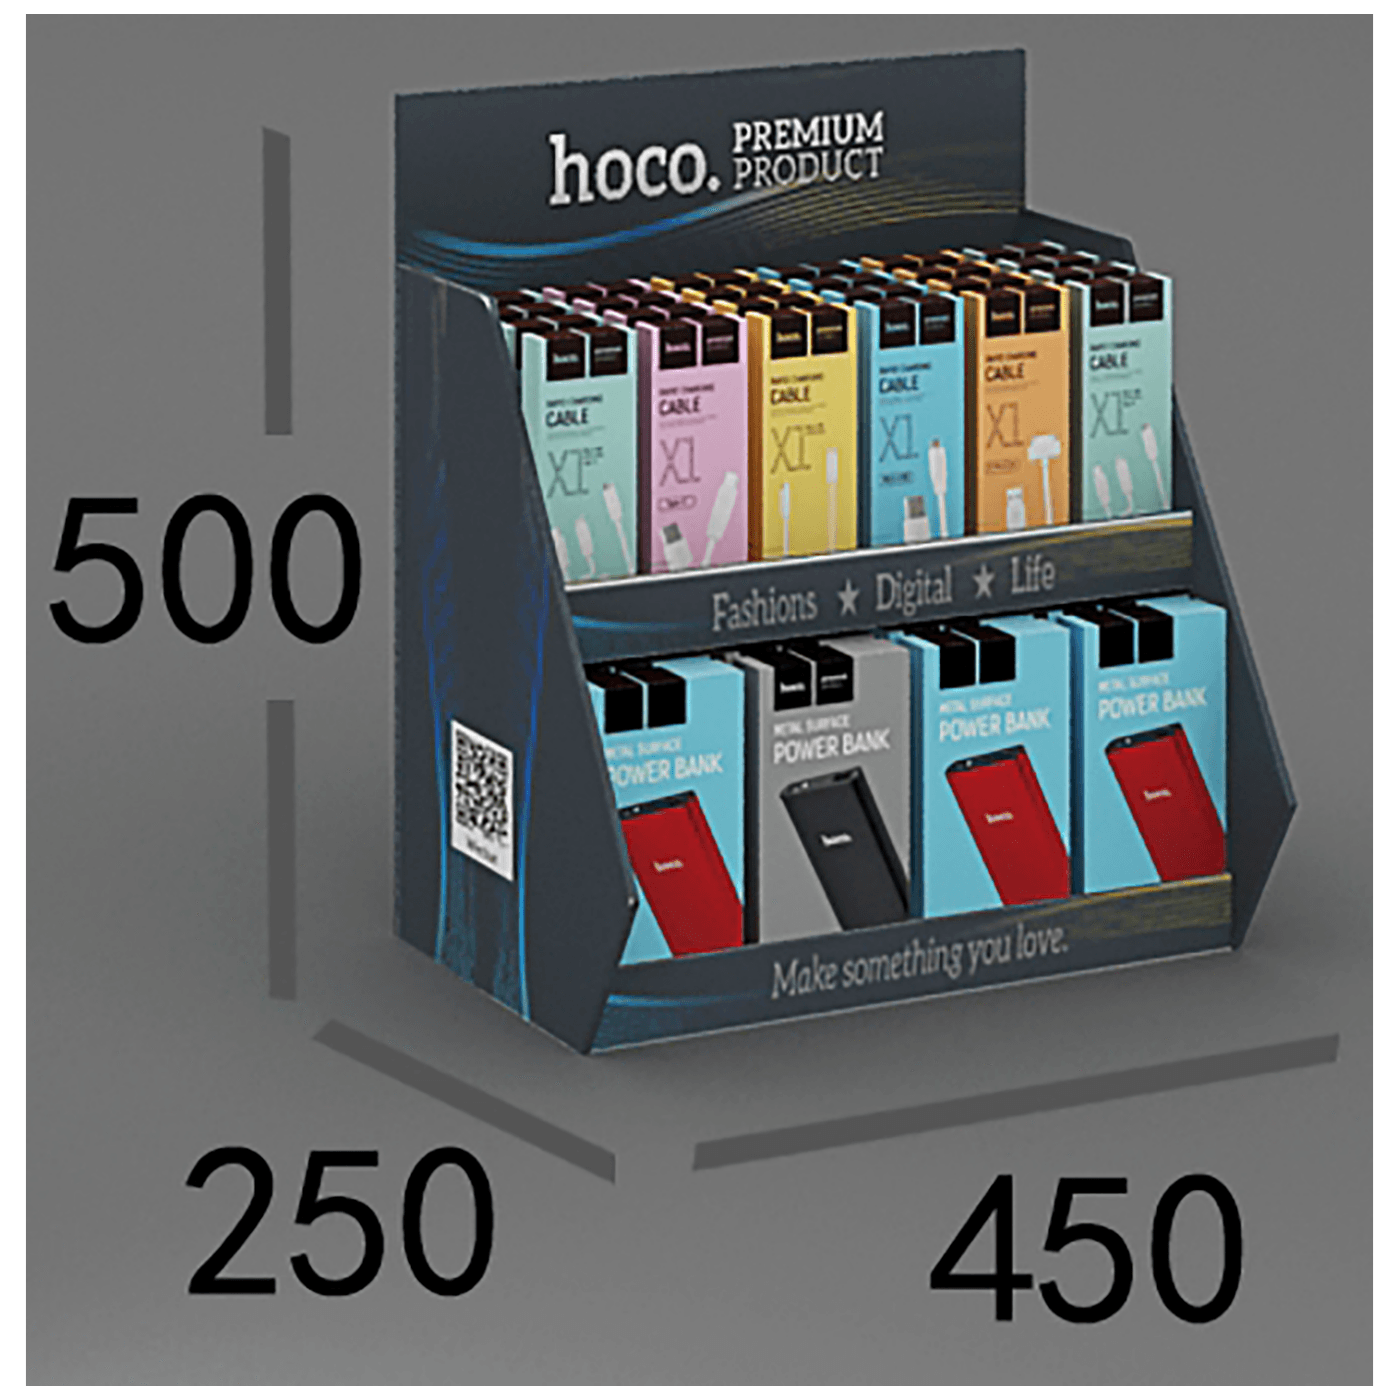 Promotional desktop carton shelf3.0